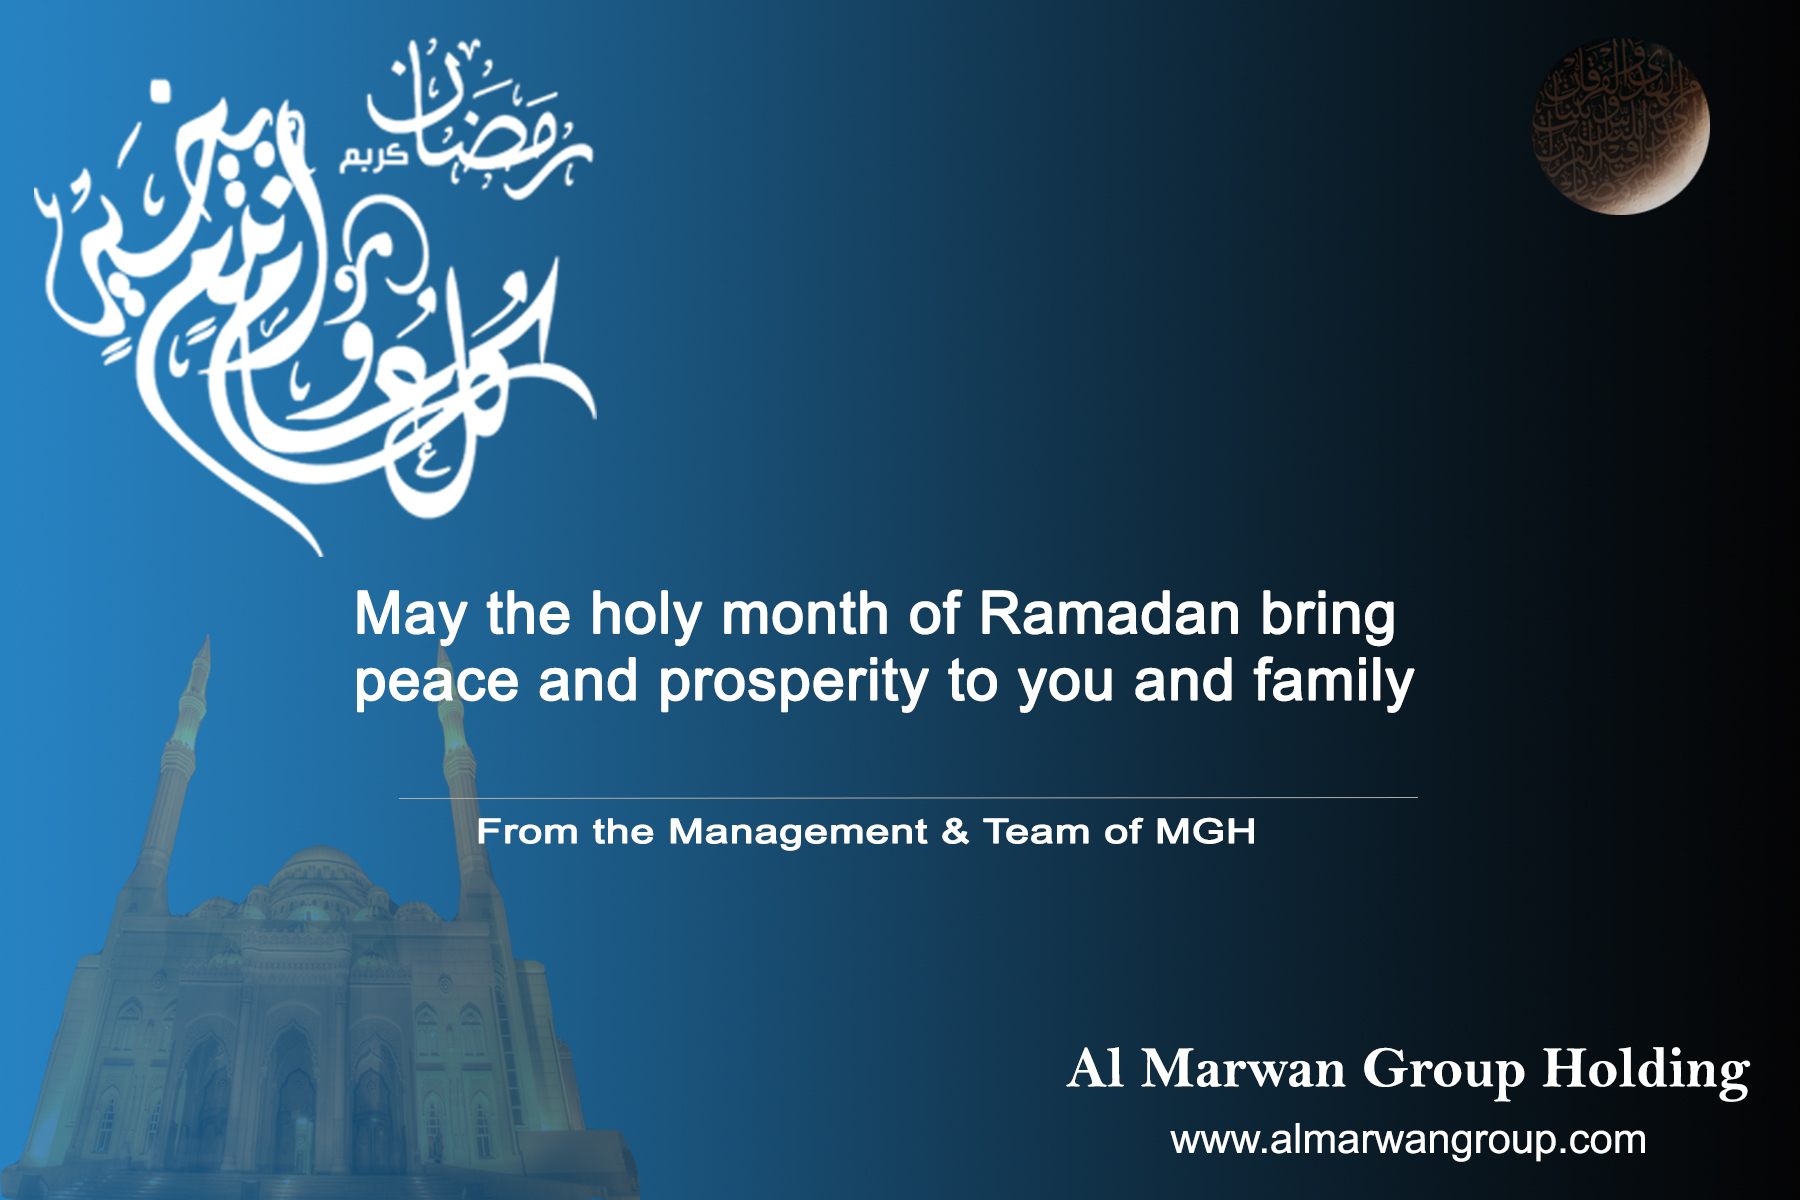 GREETING TO THE RULERS AND CITIZENS OF THE UAE ON THE OCCASION OF THE HOLY MONTH OF RAMADAN